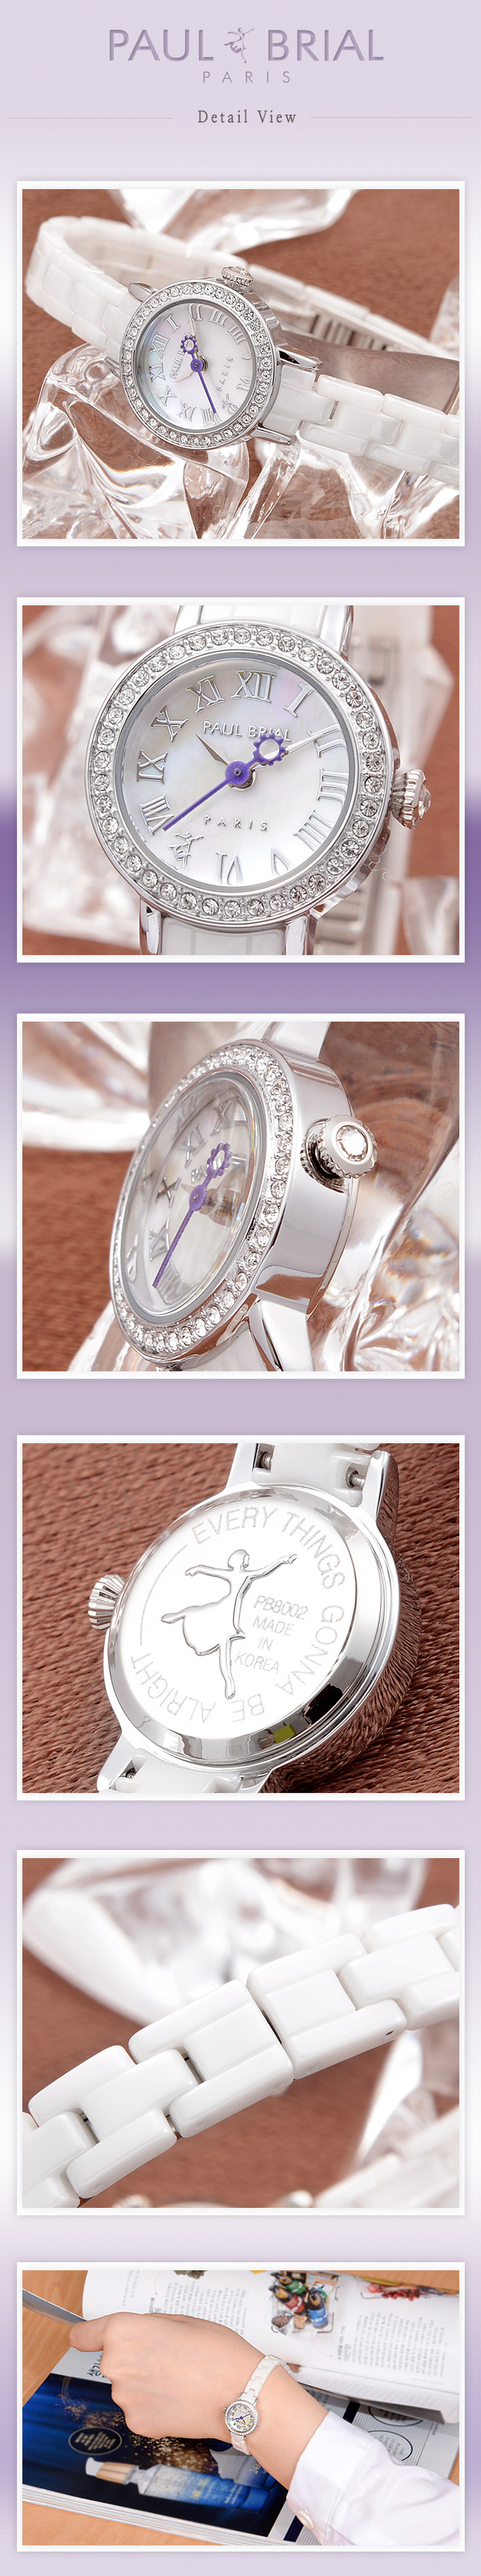 [ PAUL BRIAL ] KOREA MADE HIGH QUALITY LADIES SILVER WHITE CERAMIC WATCH PB8002WSS_R MARSEILLE